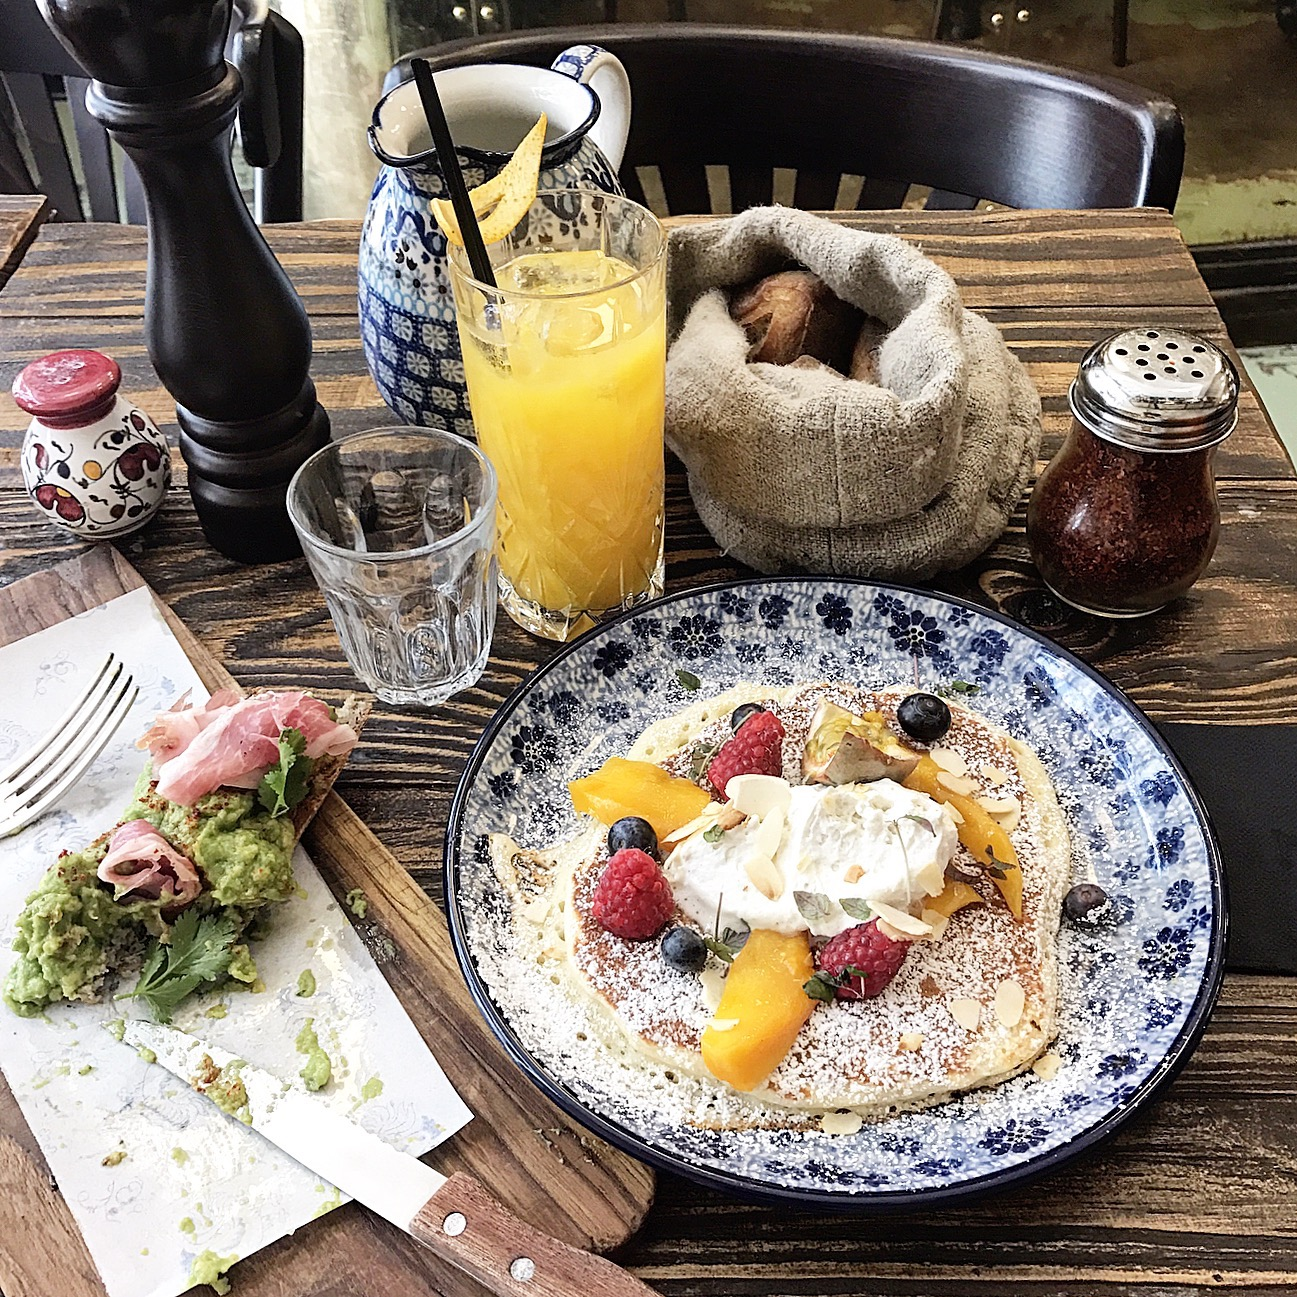 meilleurs-brunchs-a-paris-2017 Envie d'un brunch à Paris ? Mes adresses favorites !